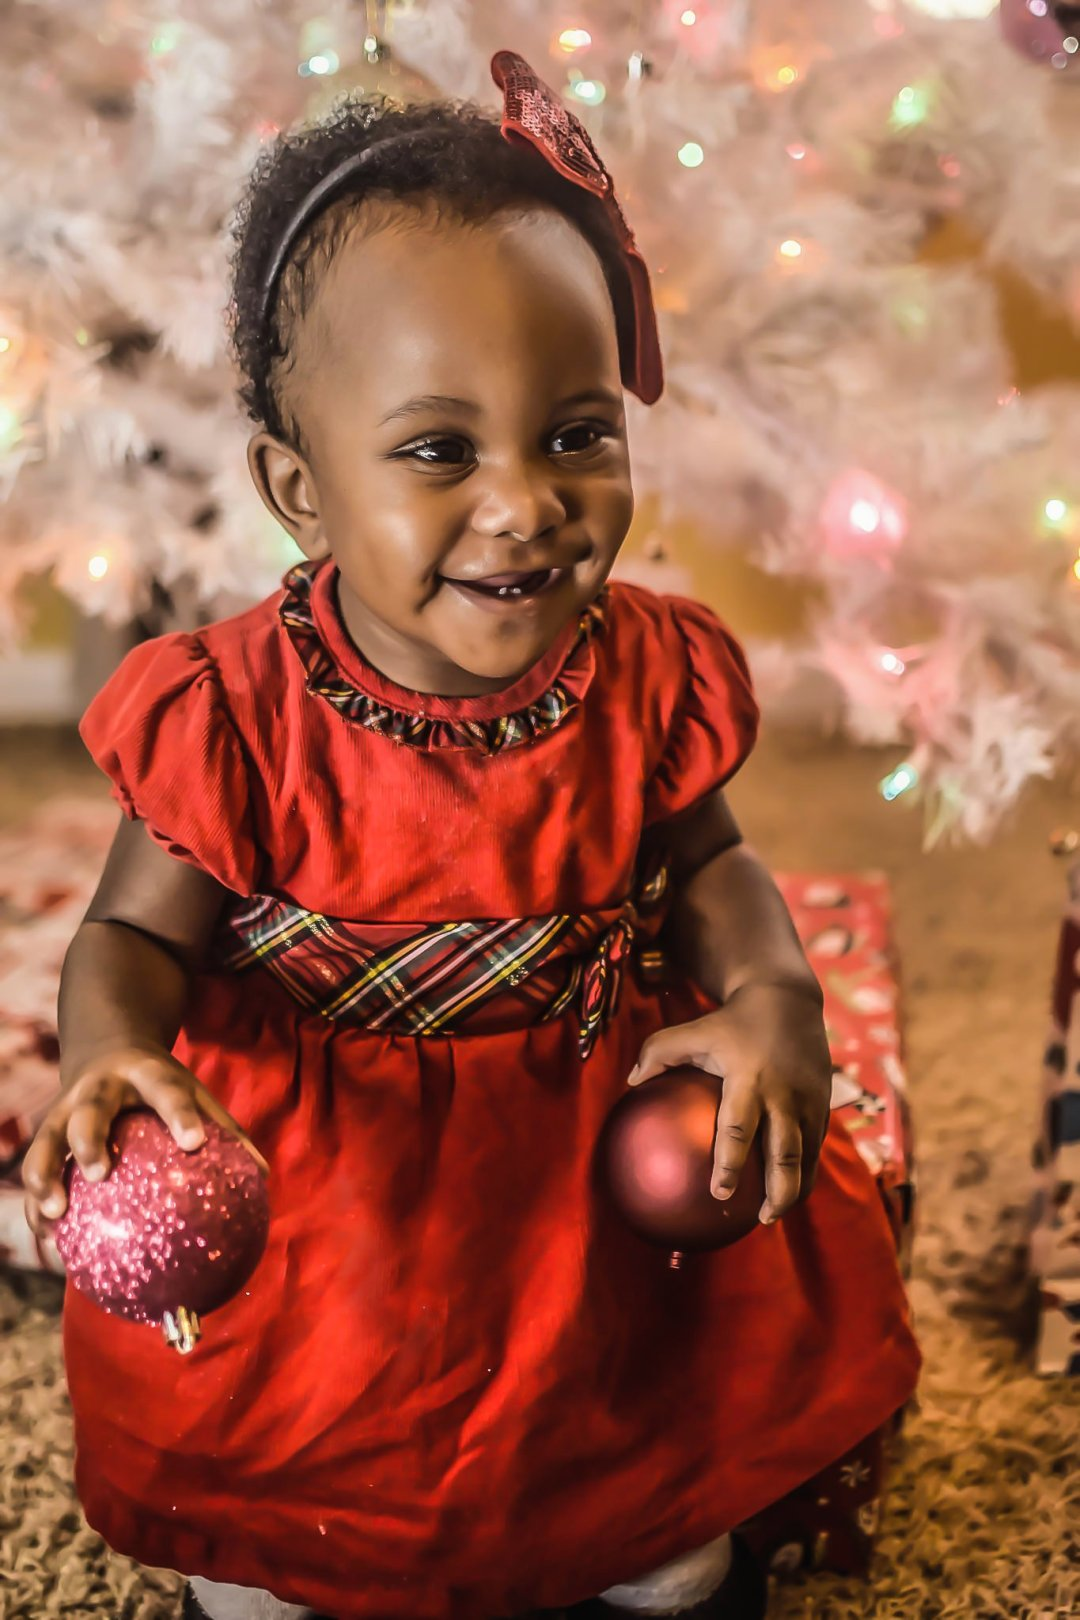 27502720037_dfc7b13fe0_k Black Southern Belle Baby Holiday Photos We Love